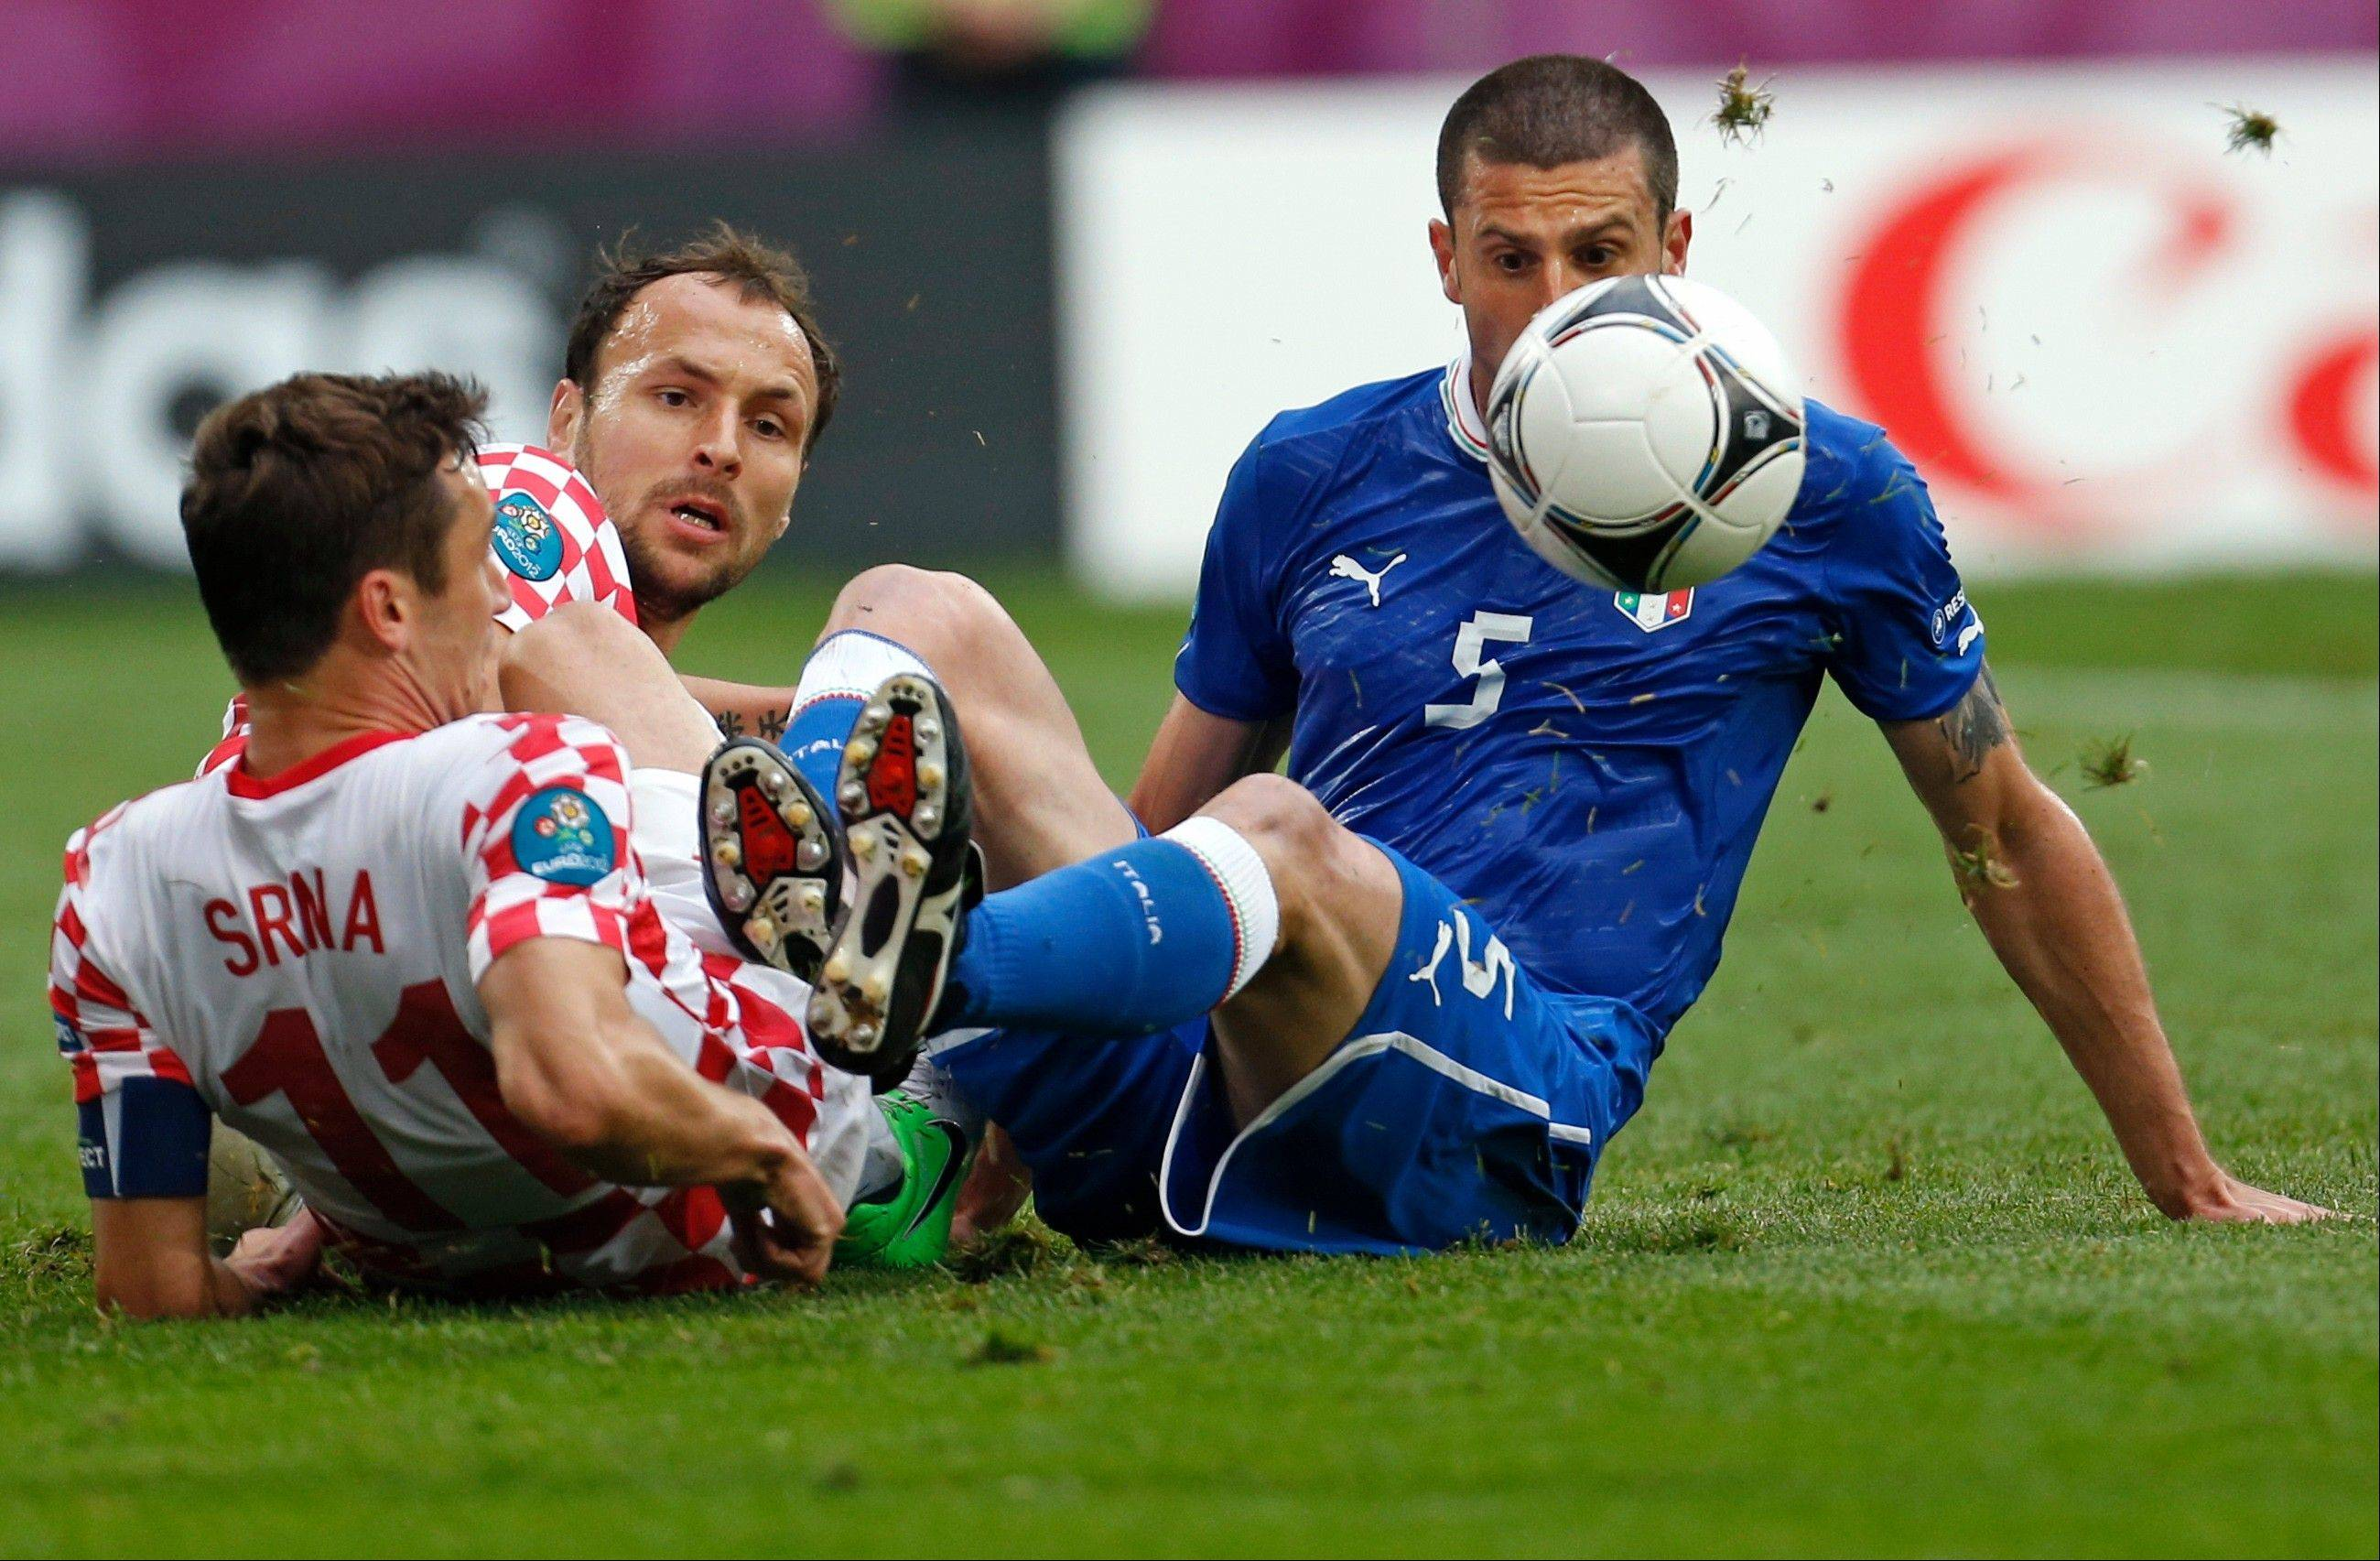 Italy's Thiago Motta, right, and Croatia's Darijo Srna challenge for the ball Thursday during the Euro 2012 Group C match in Poznan, Poland.